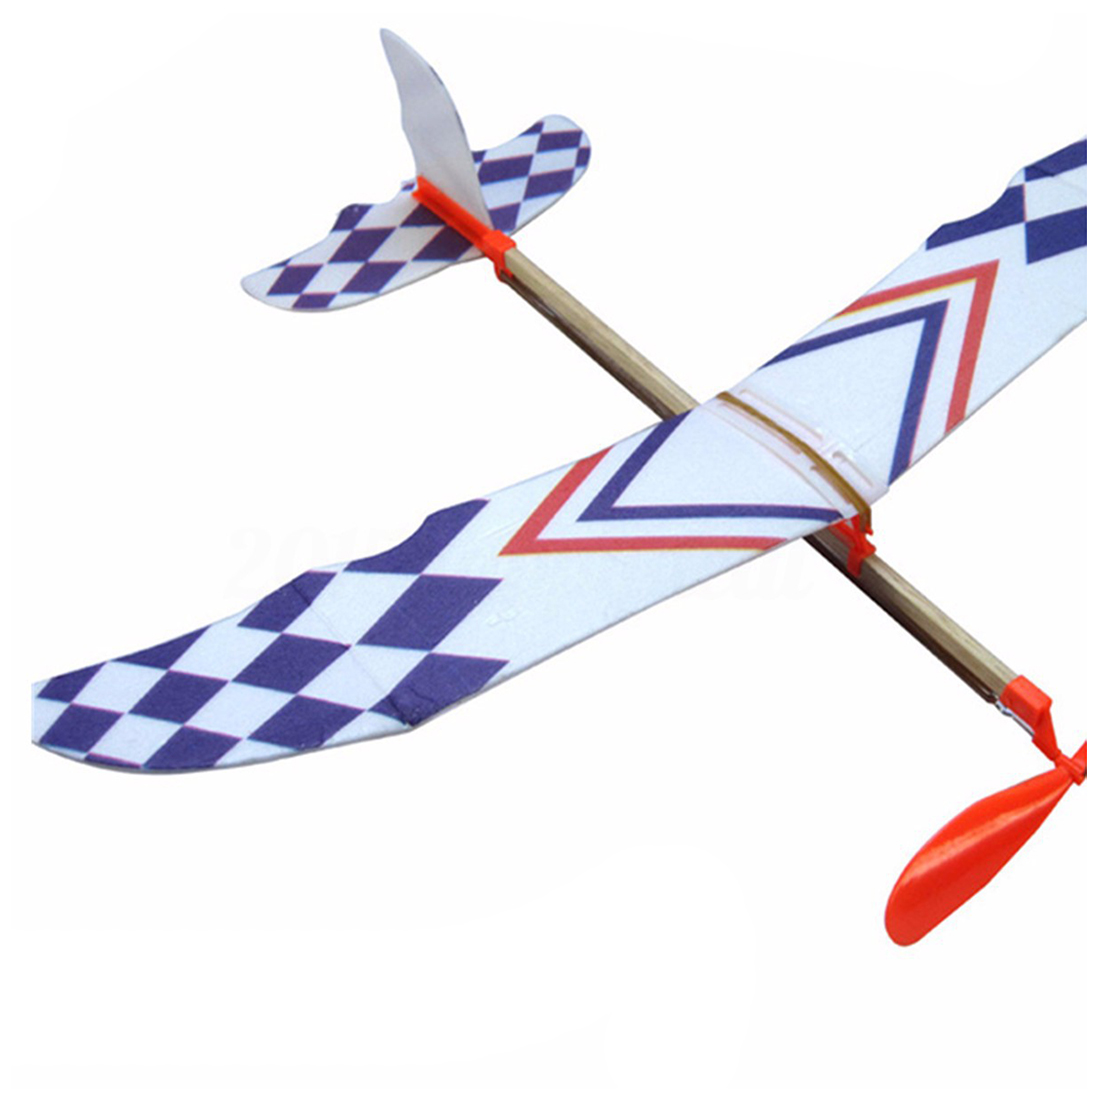 Elastic Rubber Band Powered DIY Foam Plane Model Kit Aircraft Educational Toy